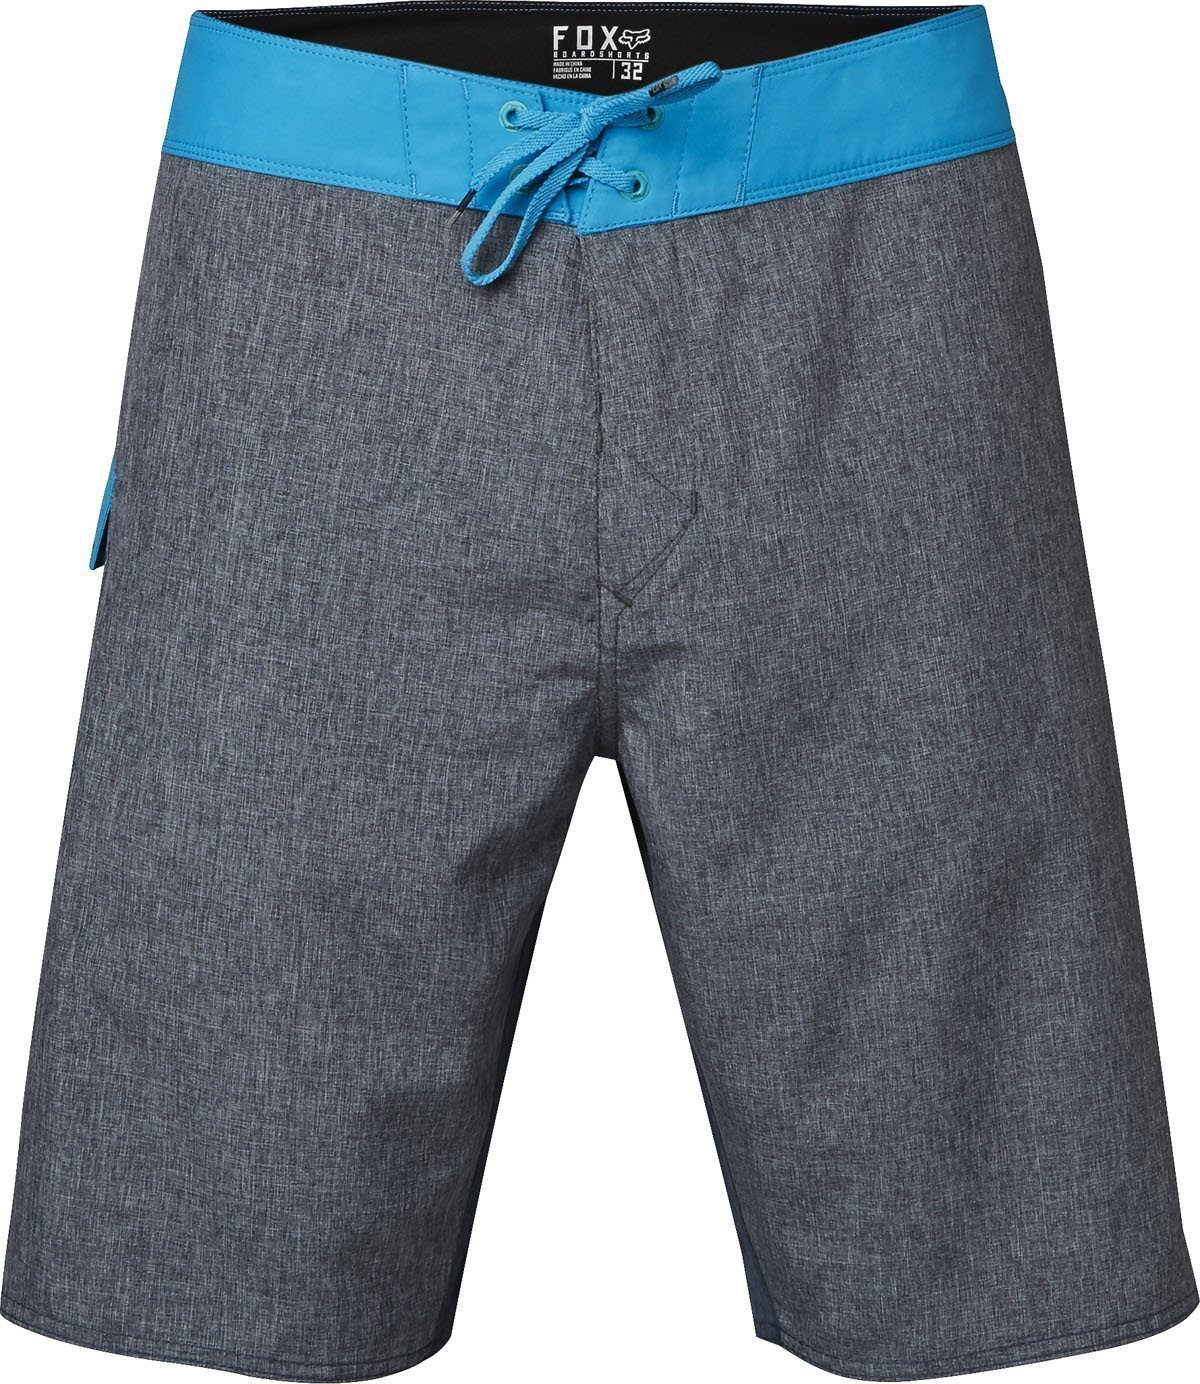 Fox boardshort Overhead Switch